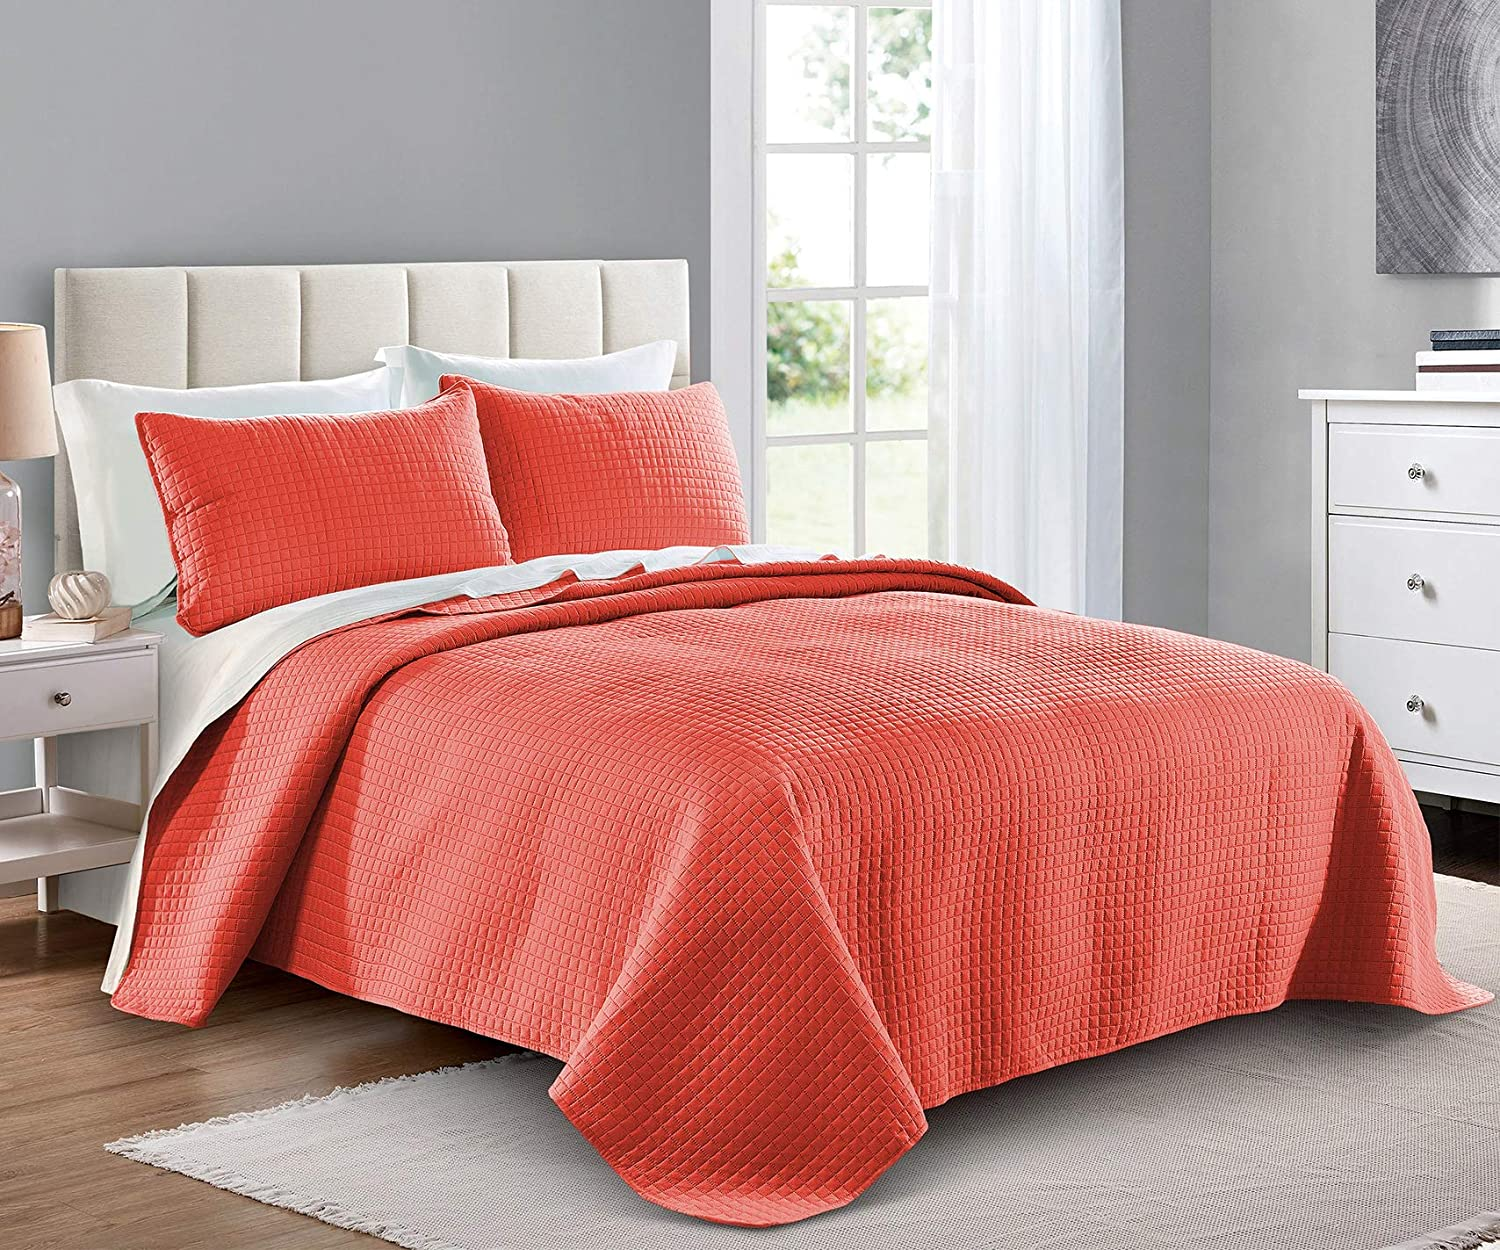 Quilt Set King Cal California Max 74% OFF - B Size Year-end annual account Coral Oversized